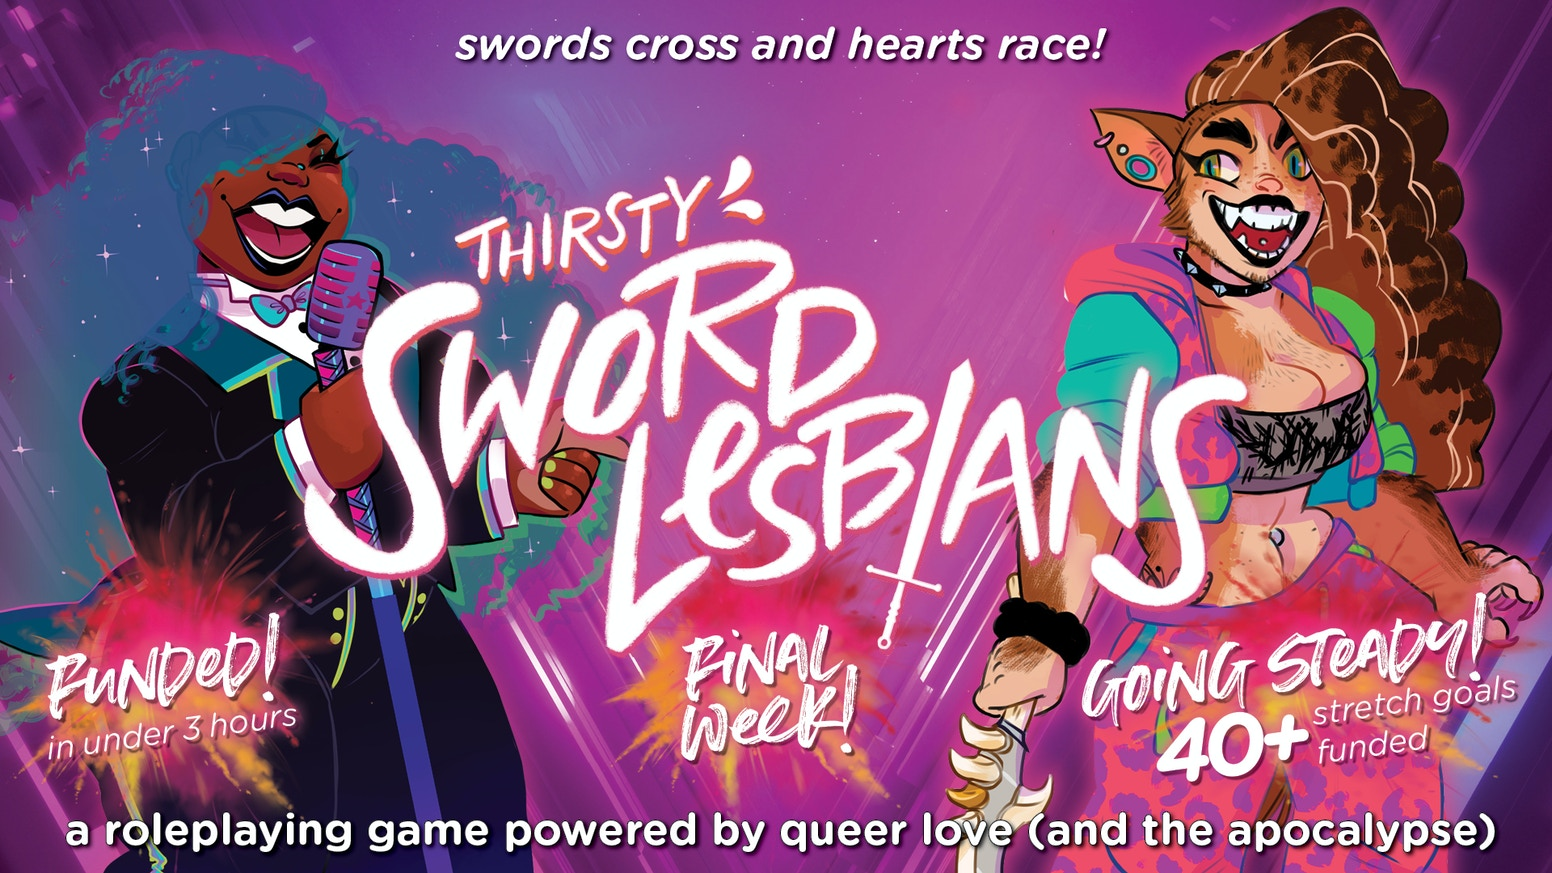 Thirsty Sword Lesbians by Fred Hicks / Evil Hat Productions — Kickstarter